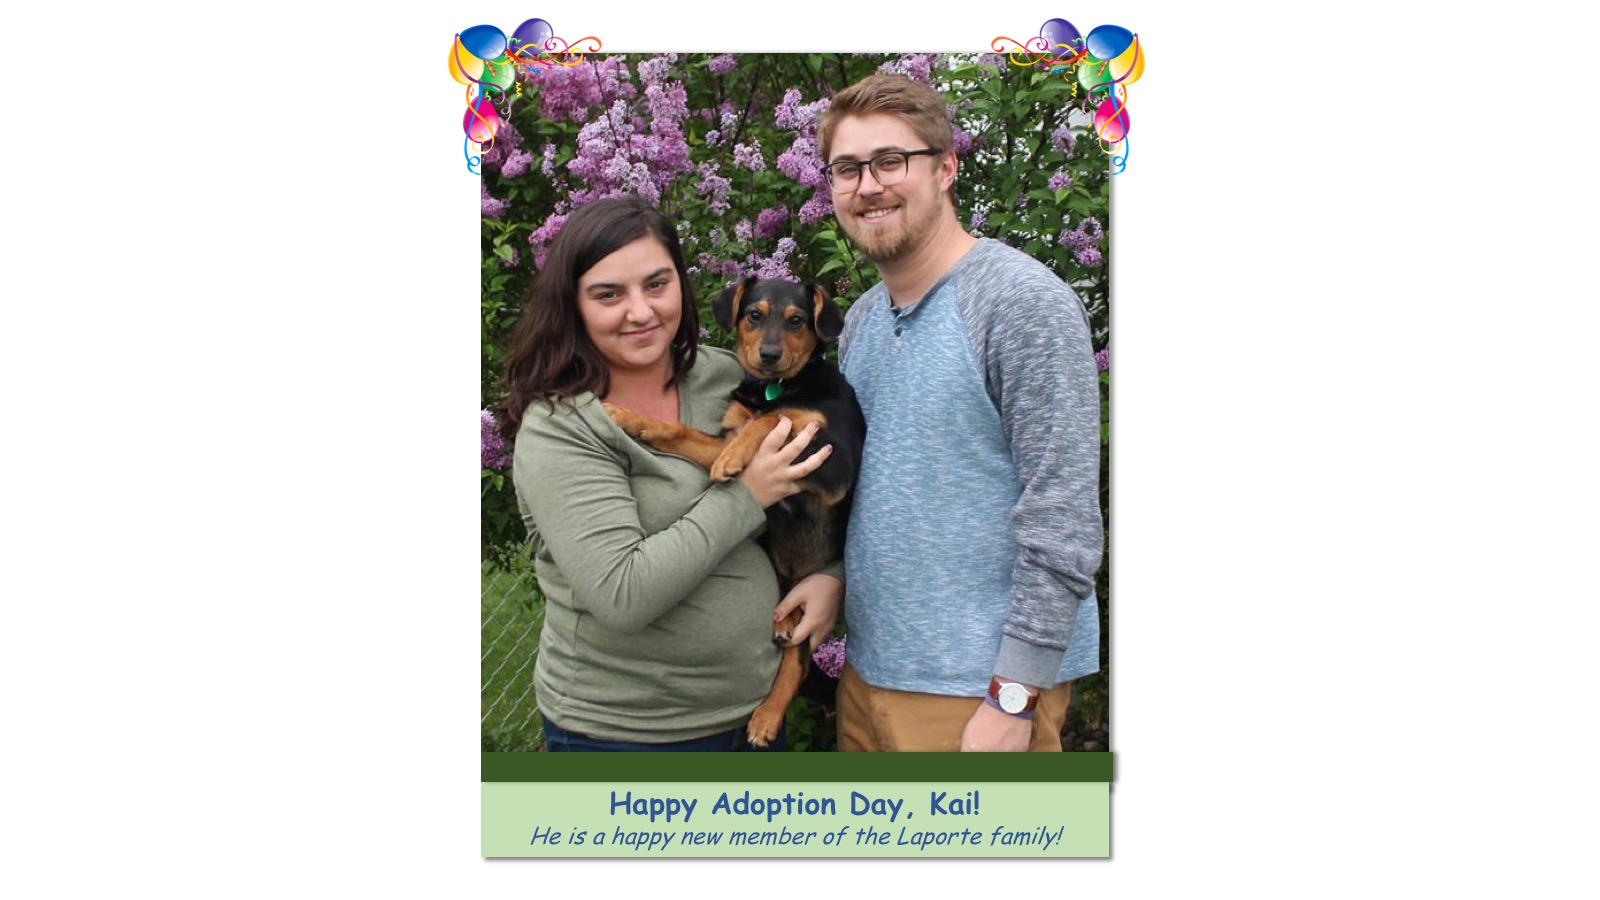 Kai_Adoption_Photo_2018.jpg